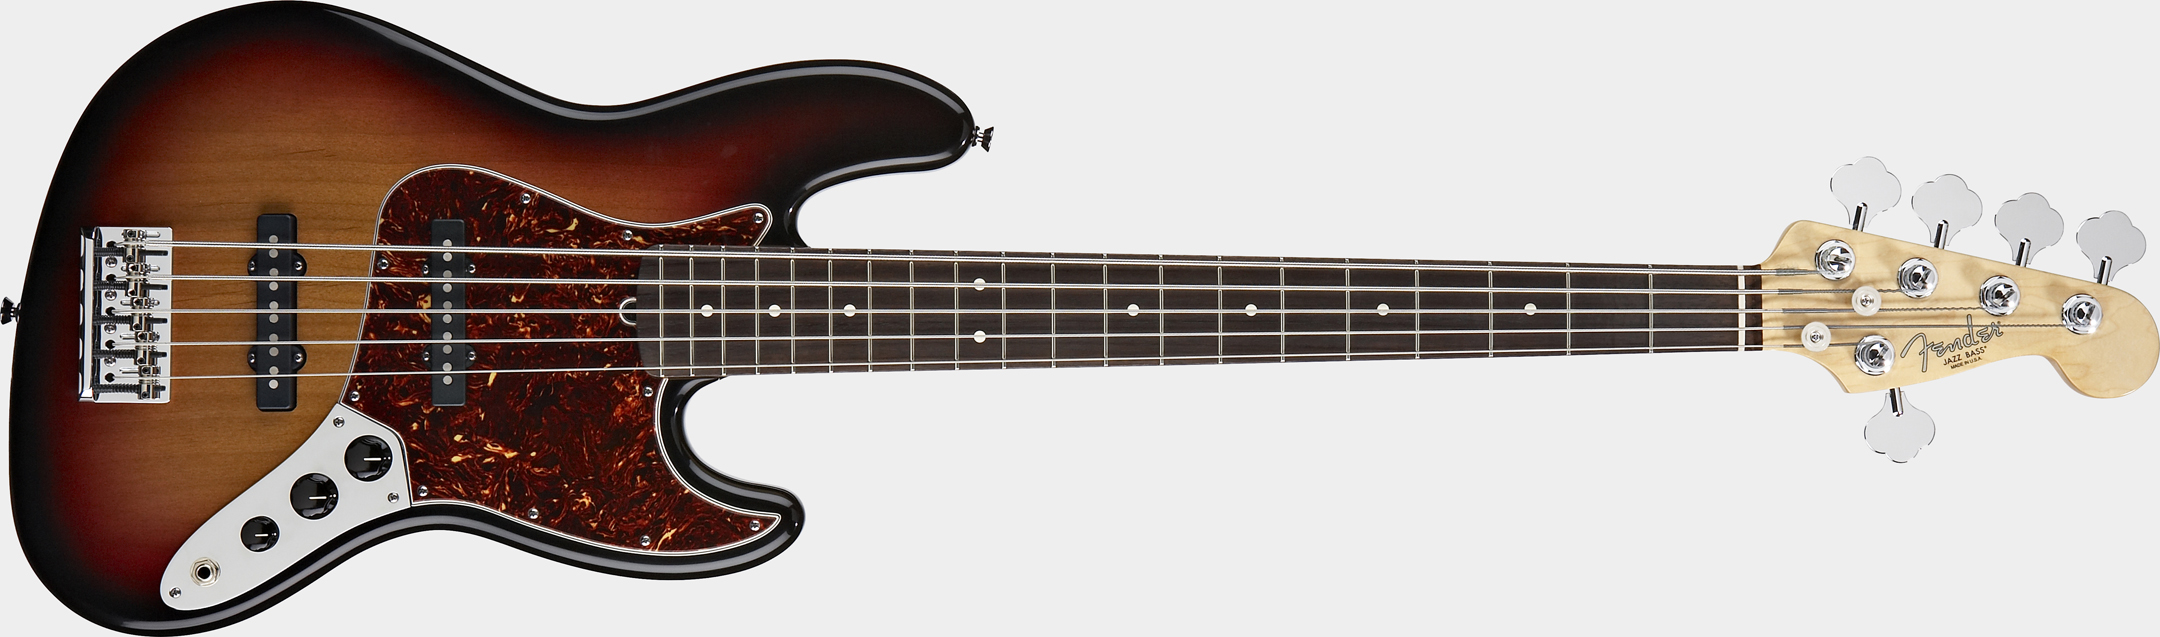 FENDER American Standard Jazz Bass V 3-Color Sunburst